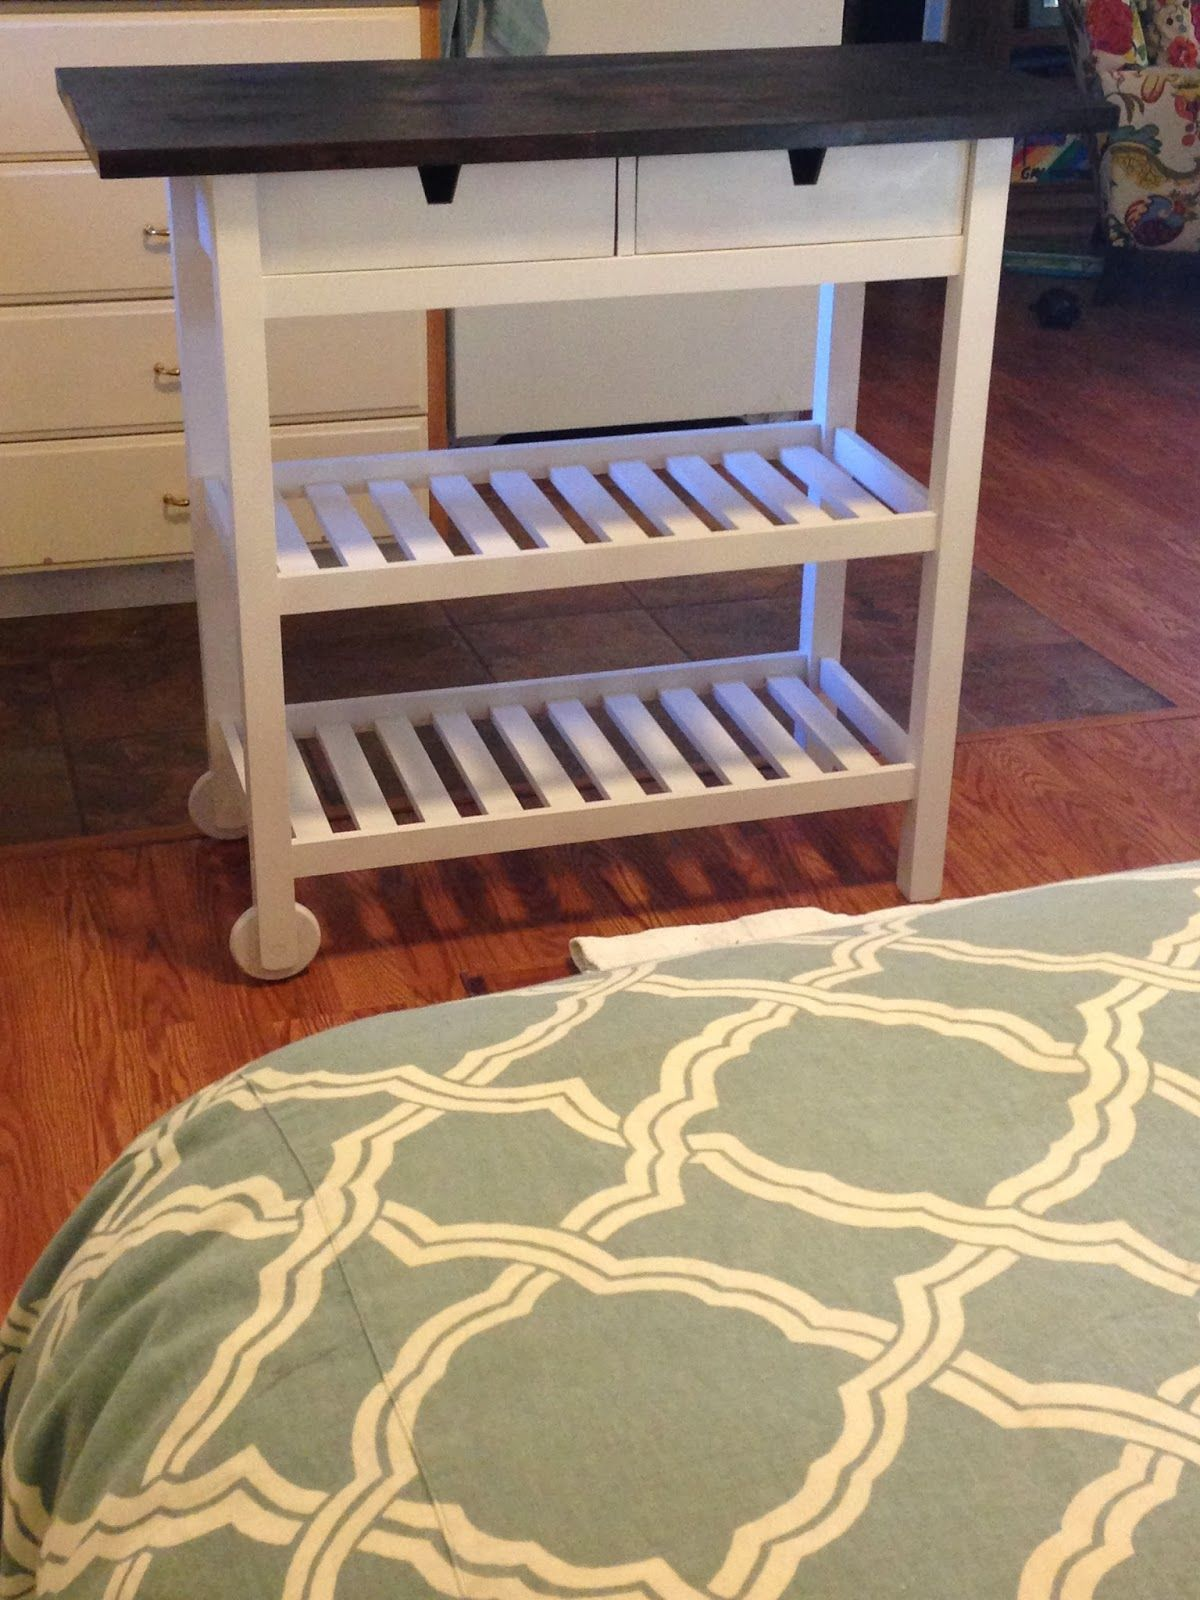 Kitchen Carts Ikea The Daily Wink Ikea Hack Frhja Kitchen Cart For The Home